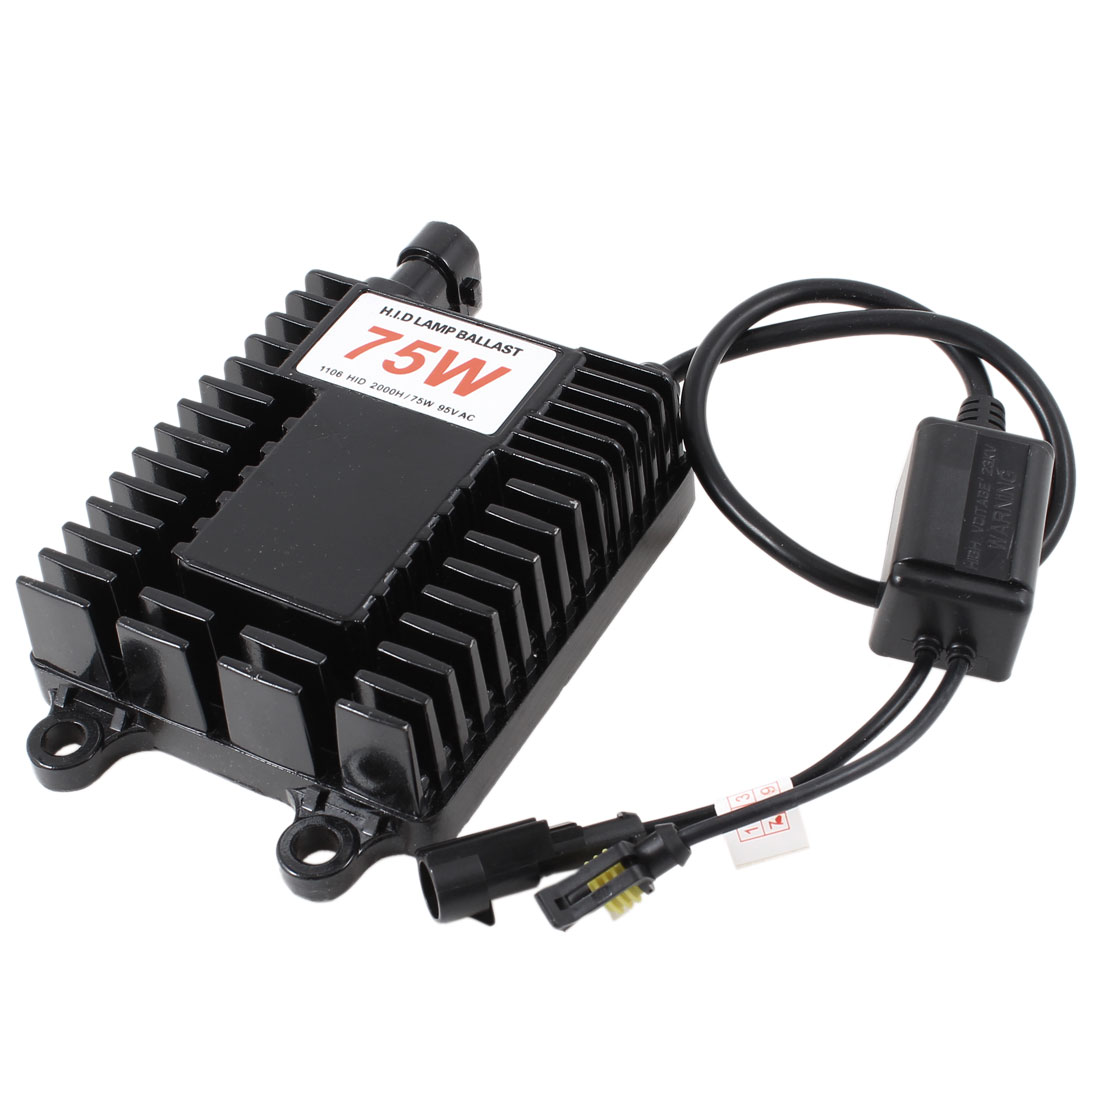 12V 75W HID Slim Ballast Black for 9003 9004 9005 9006 9007 9008 9145 5202 880 D2R